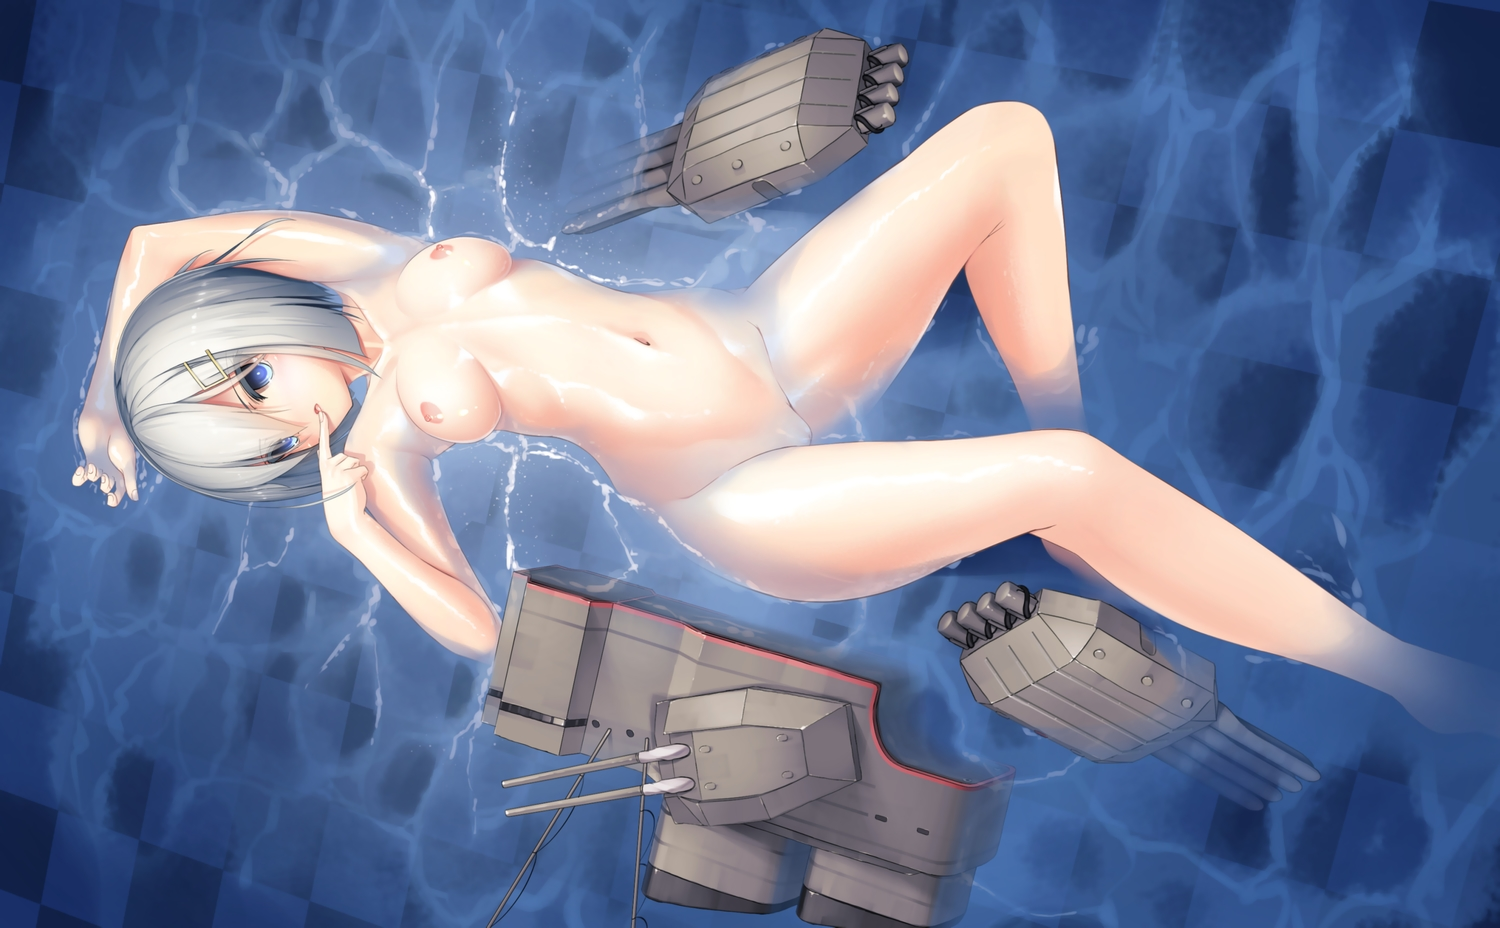 anthropomorphism aqua_eyes breasts dobunezumi gray_hair hamakaze_(kancolle) kantai_collection nipples nude pussy uncensored water